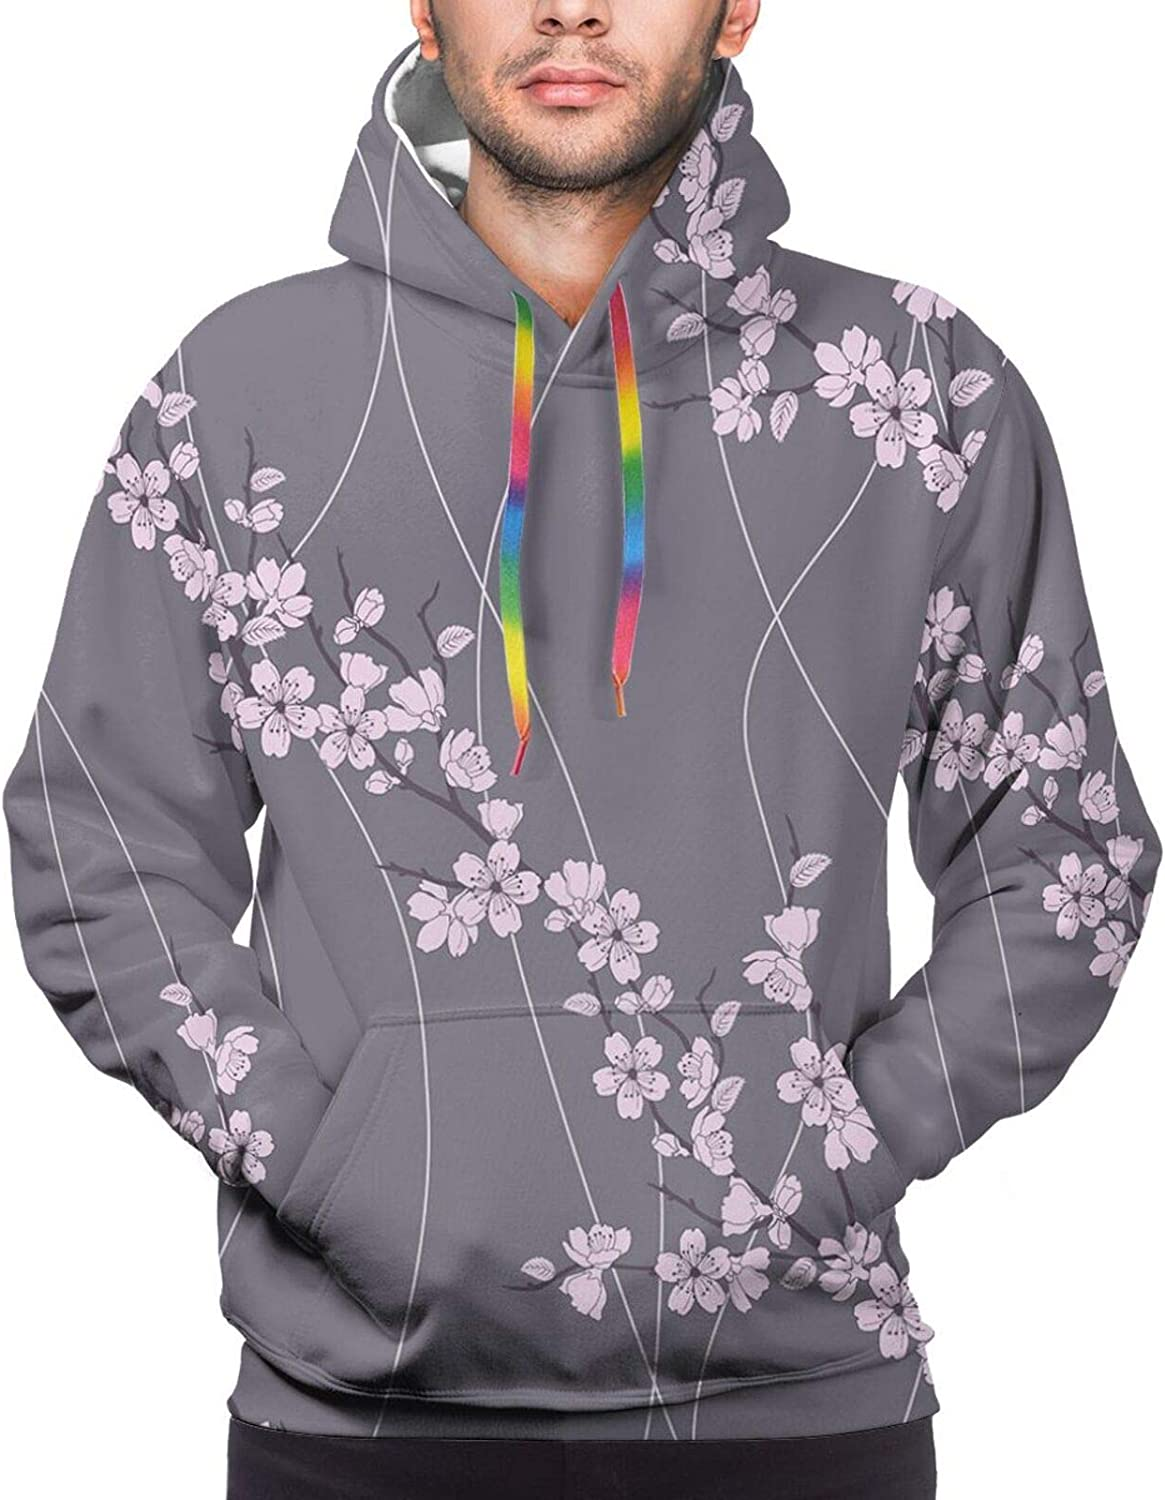 Men's Hoodies Sweatshirts,Asian River Scenery with Cherry Blossoms Boat Cultural Hints Mystical View Artsy